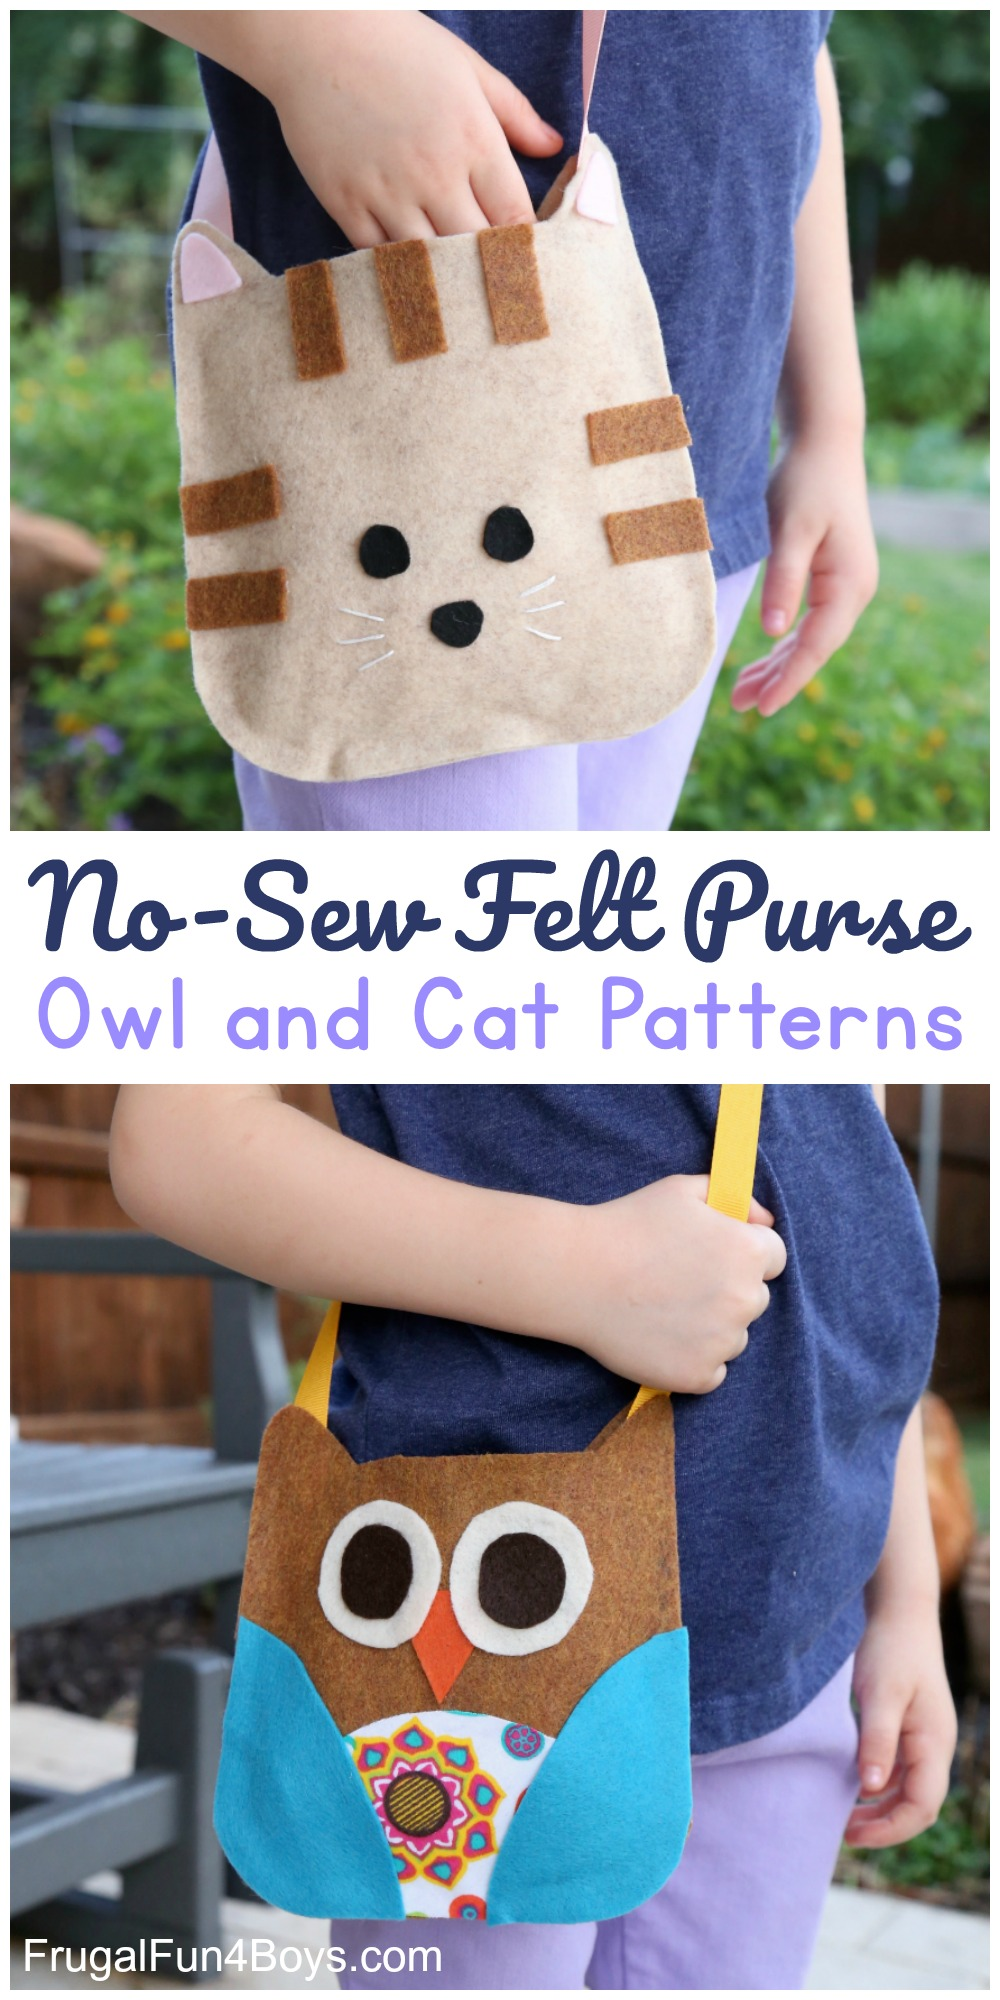 Felt craft patterns for adorable cat and owl purses.